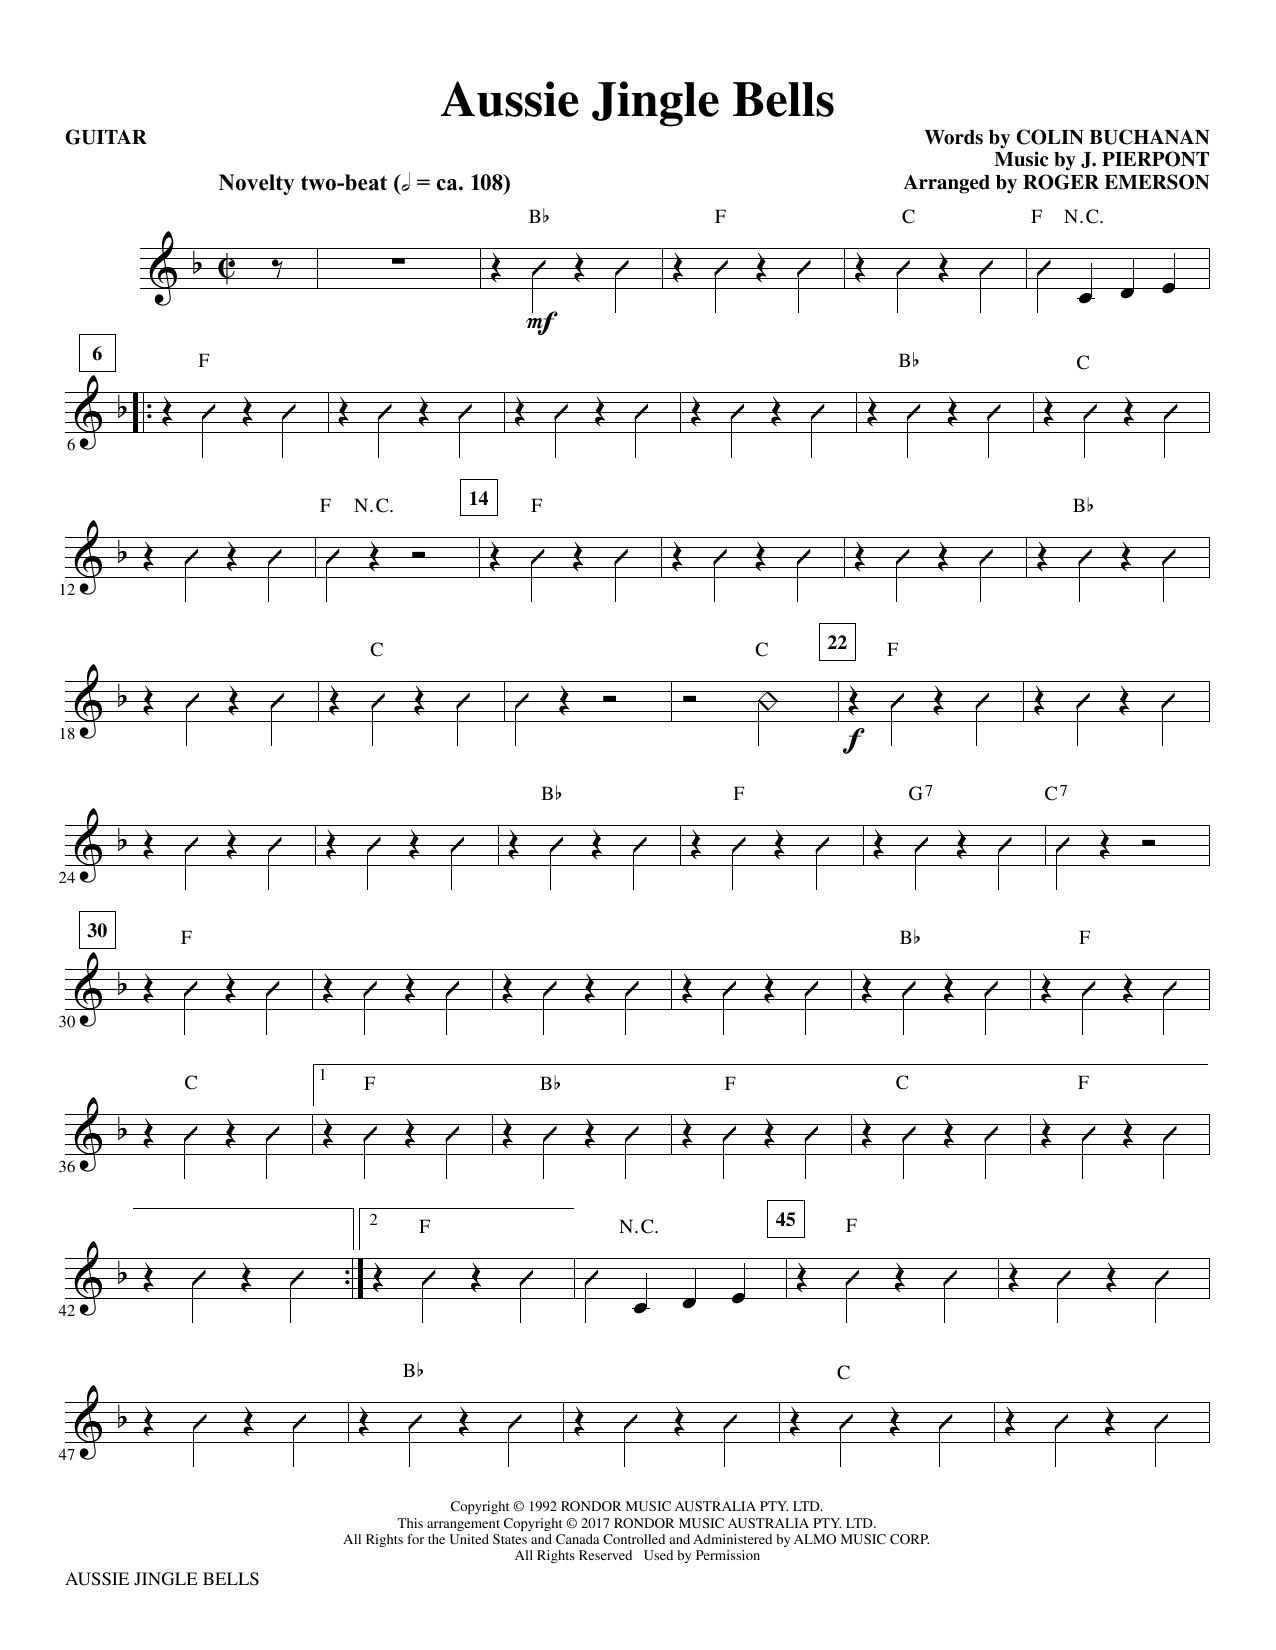 Aussie Jingle Bells - Guitar Sheet Music